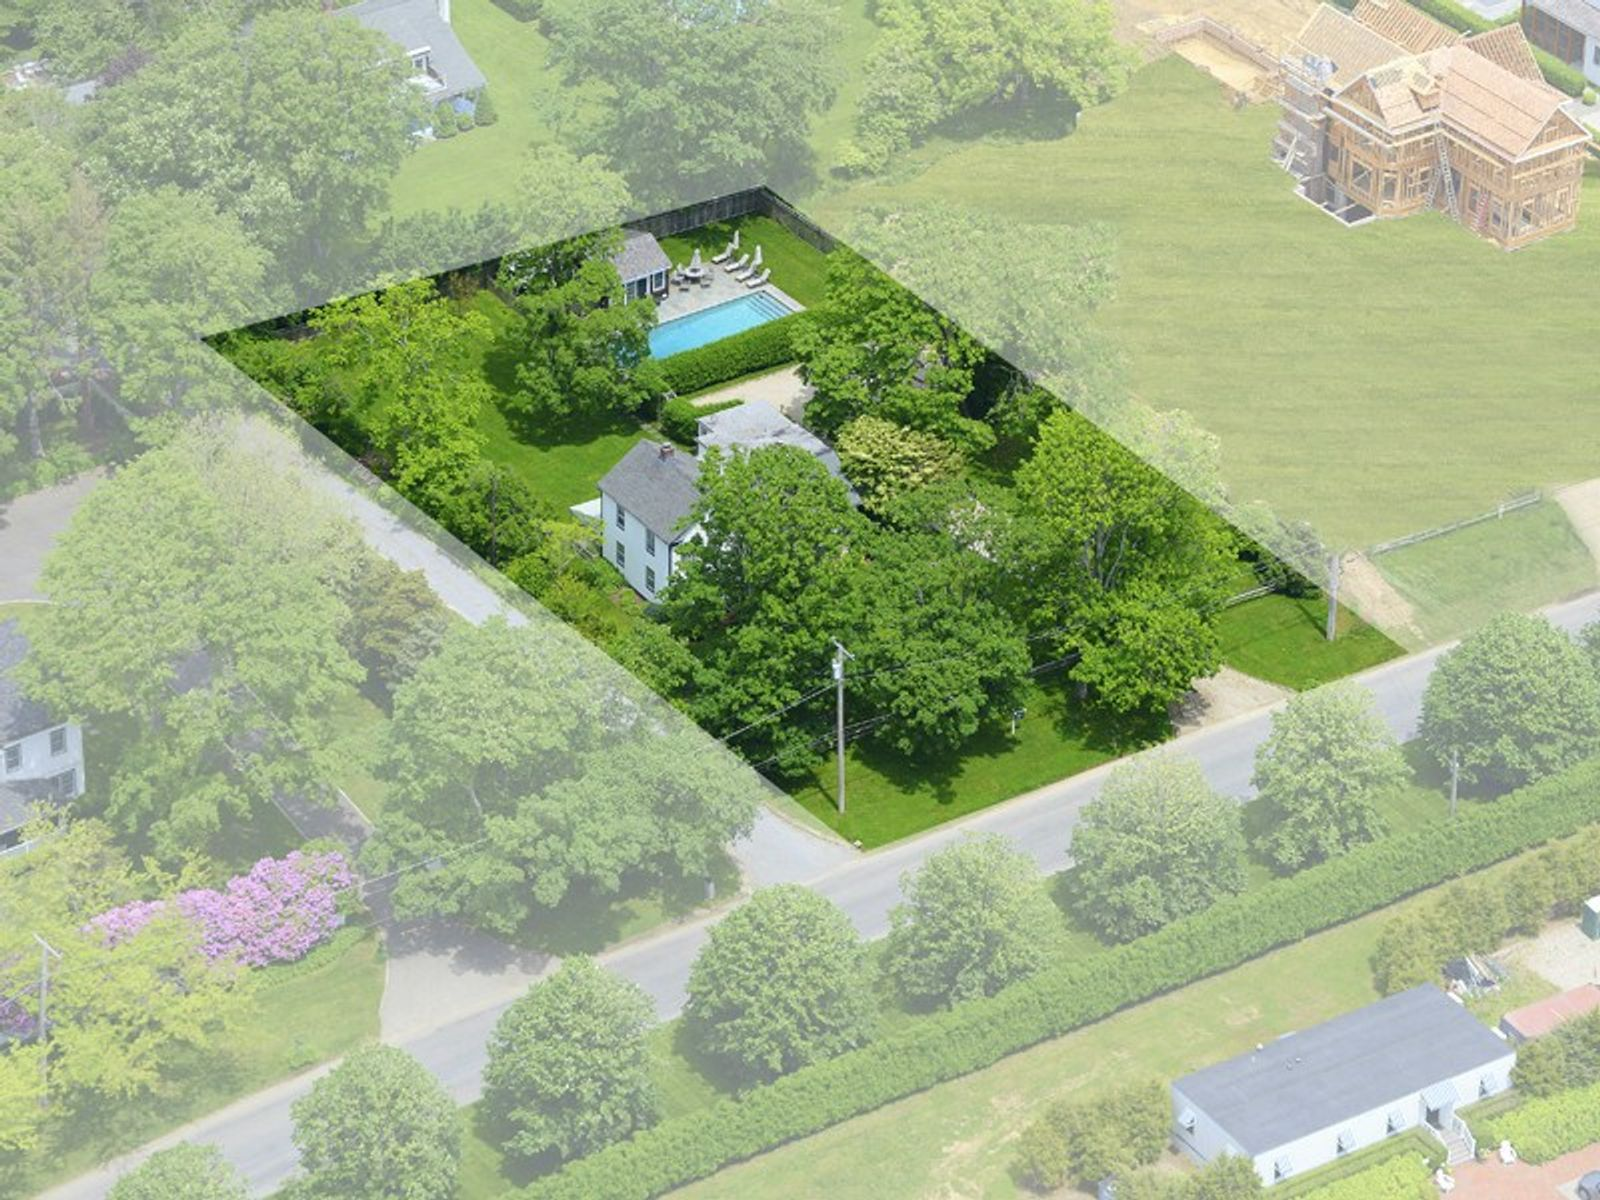 Oceanside Southampton Village, Southampton NY Single Family Home - Hamptons Real Estate